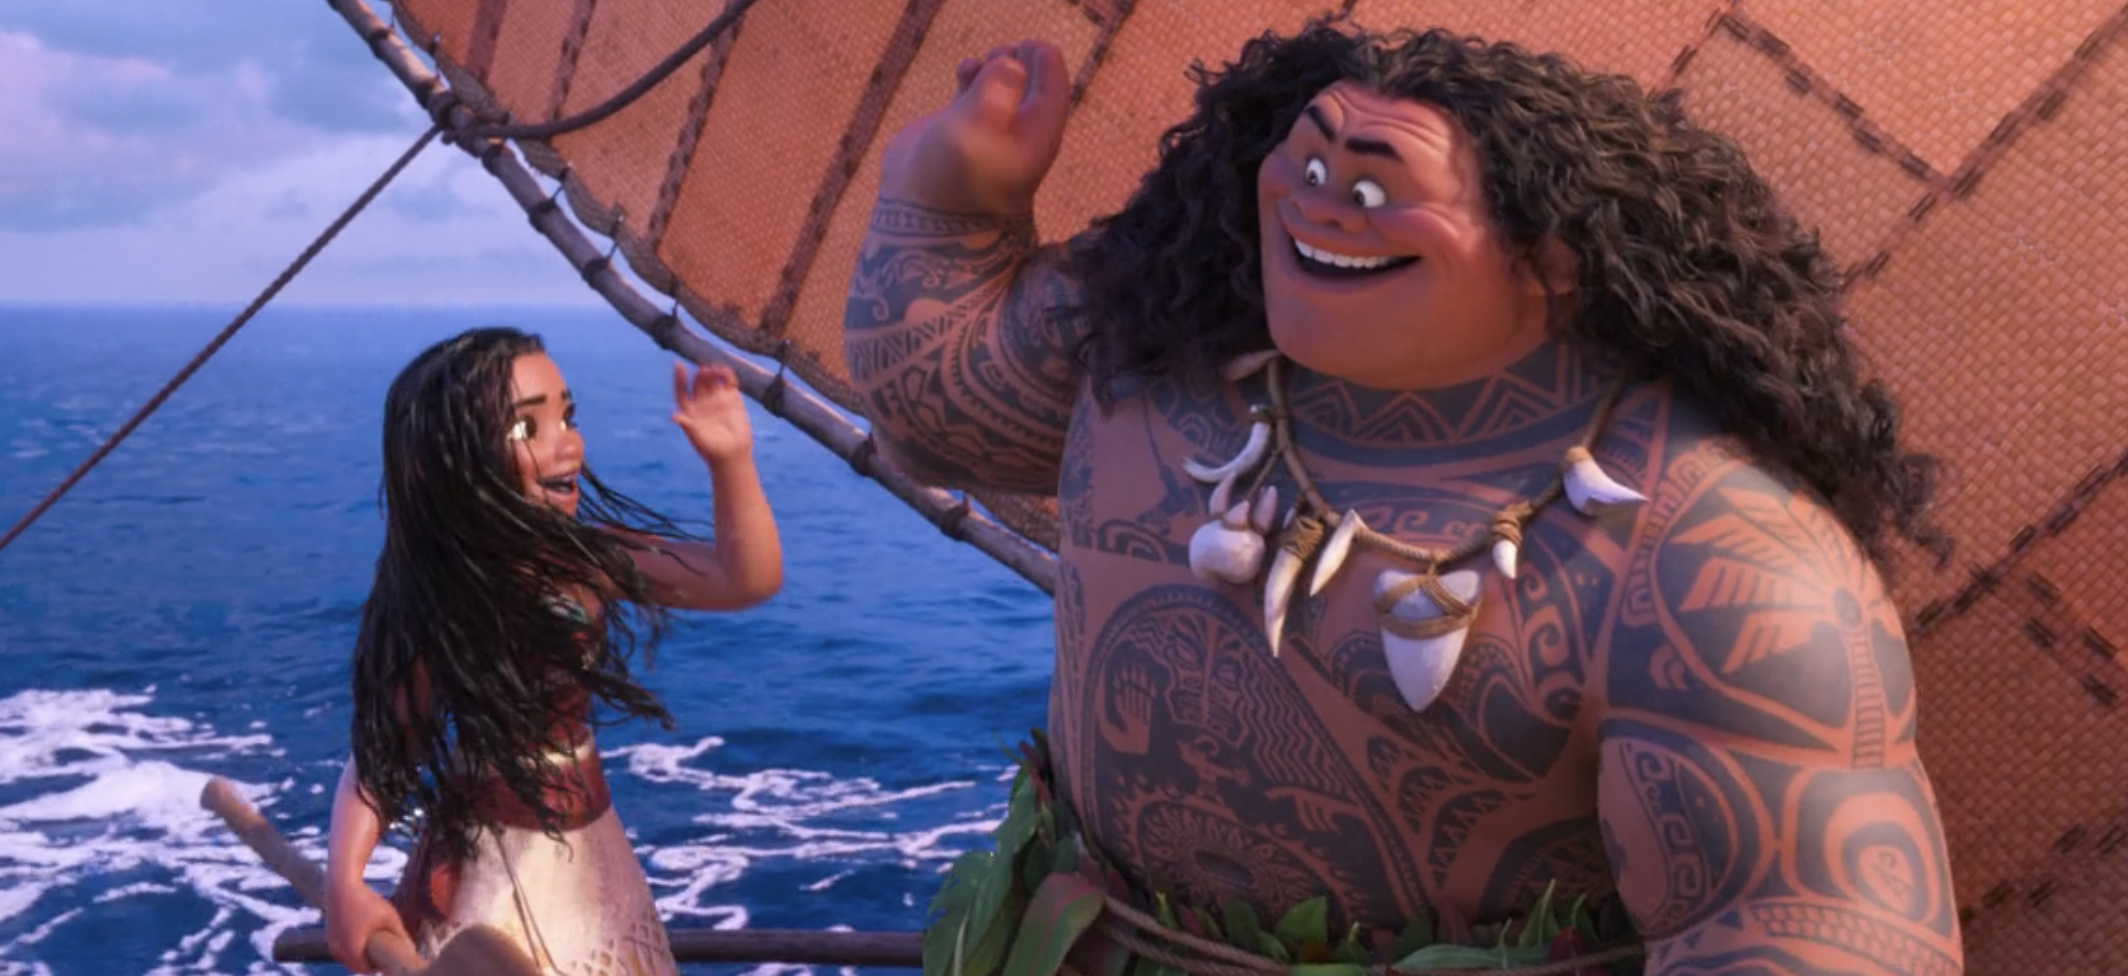 Moana and Maui giving each other a high five